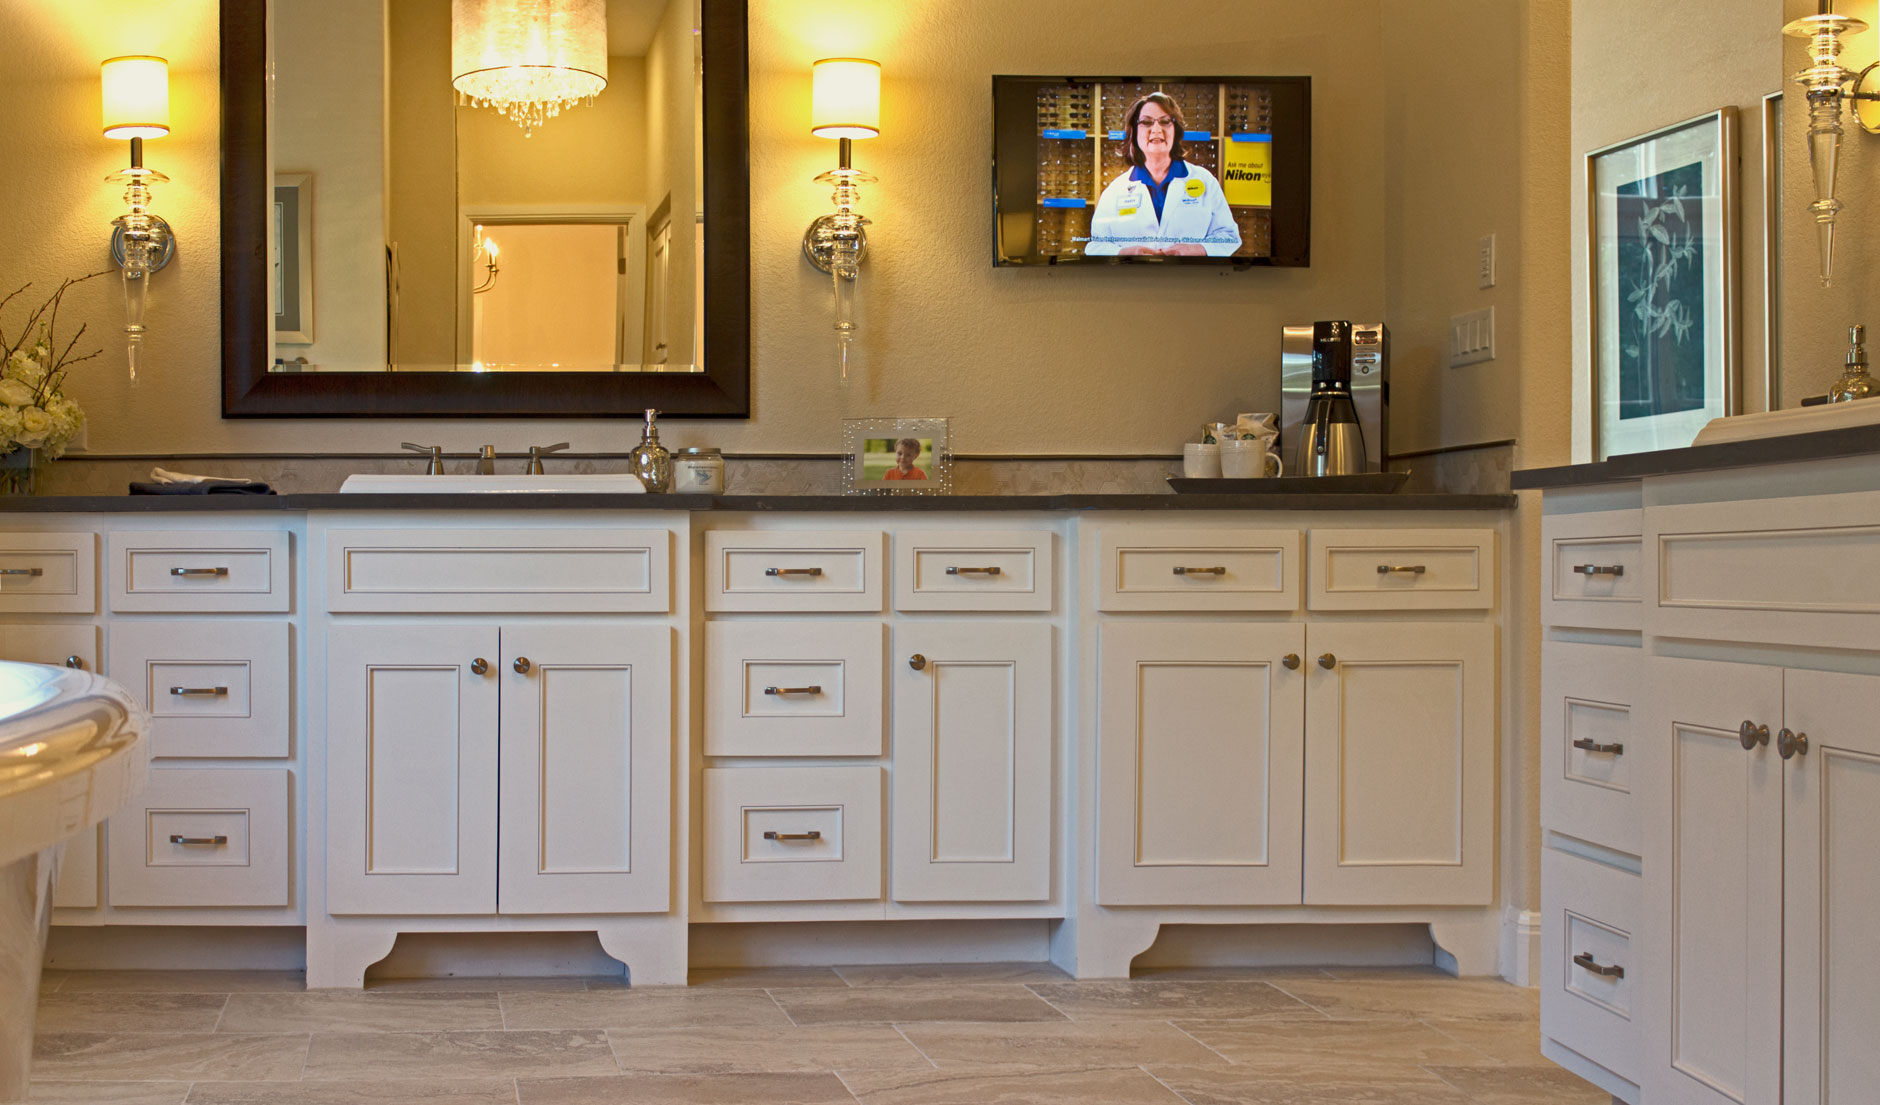 master bath with TaylorCraft Cabinet Door Company MW15 frame and flat panel cabinet doors